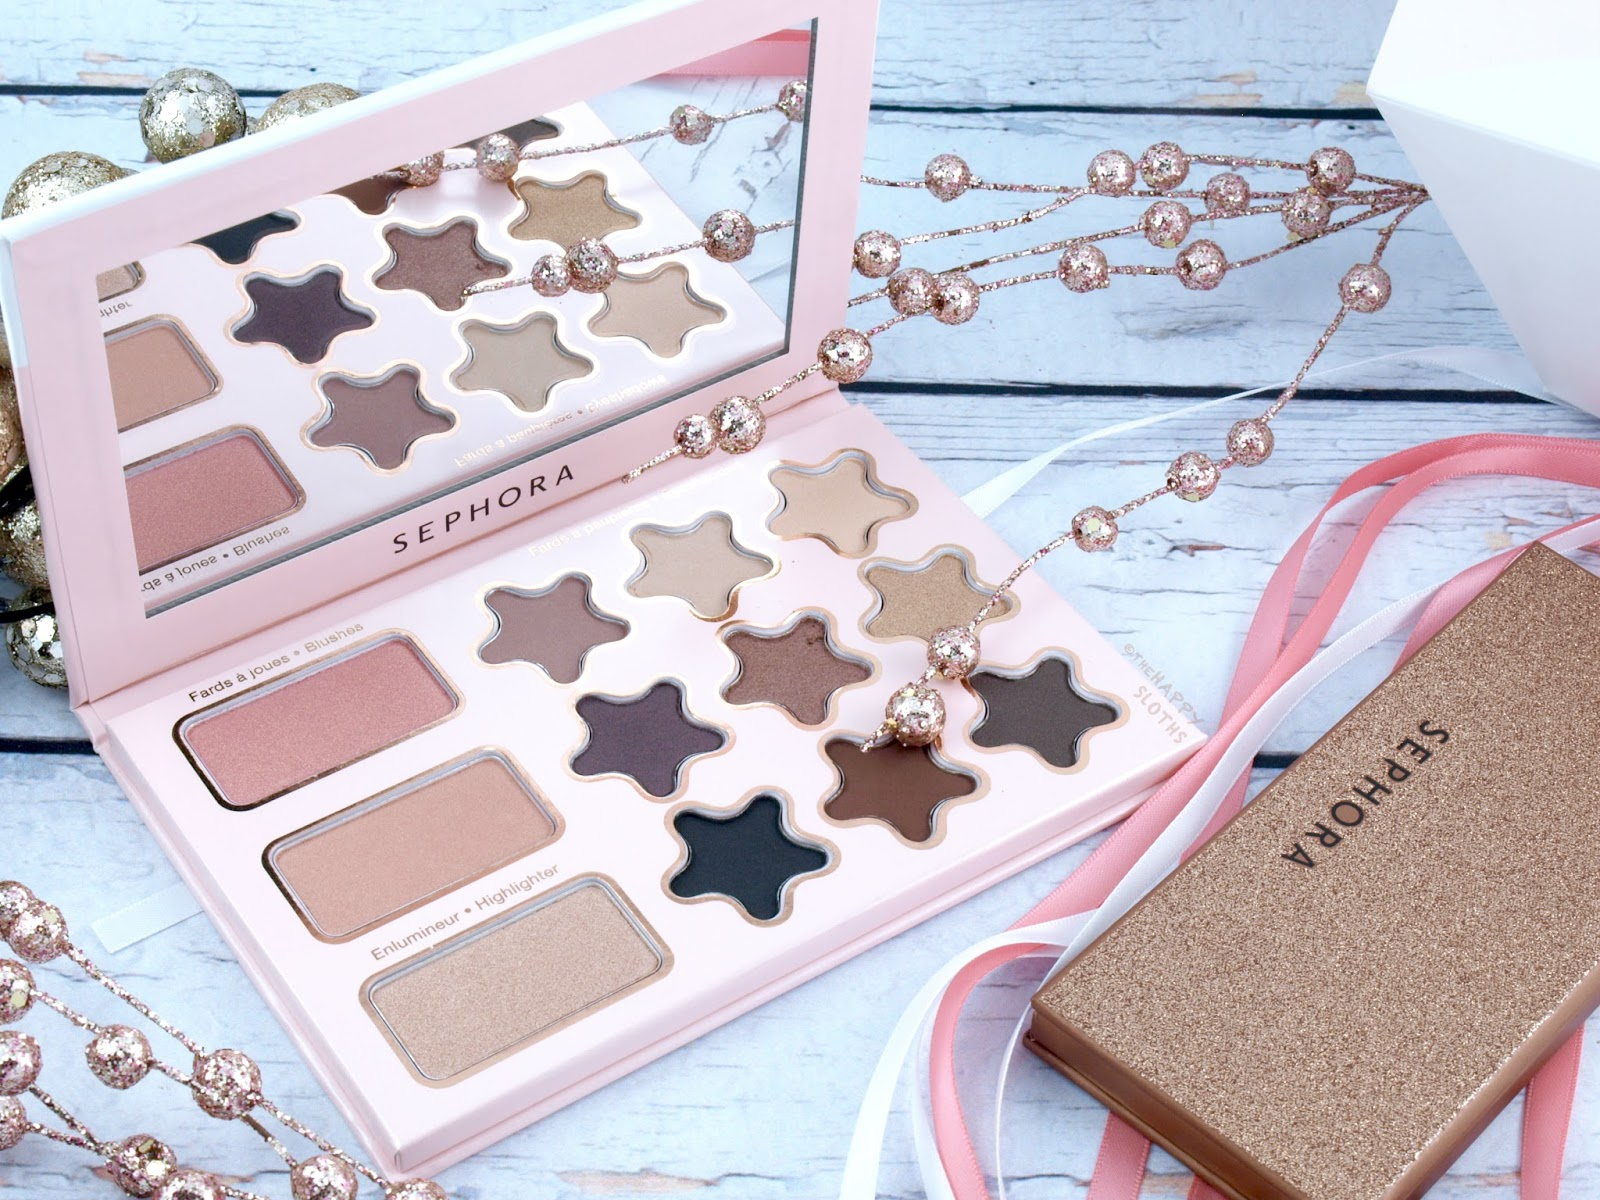 Sephora Collection Holiday 2017 Wonderful Stars Eye & Cheek Palette Review and Swatches